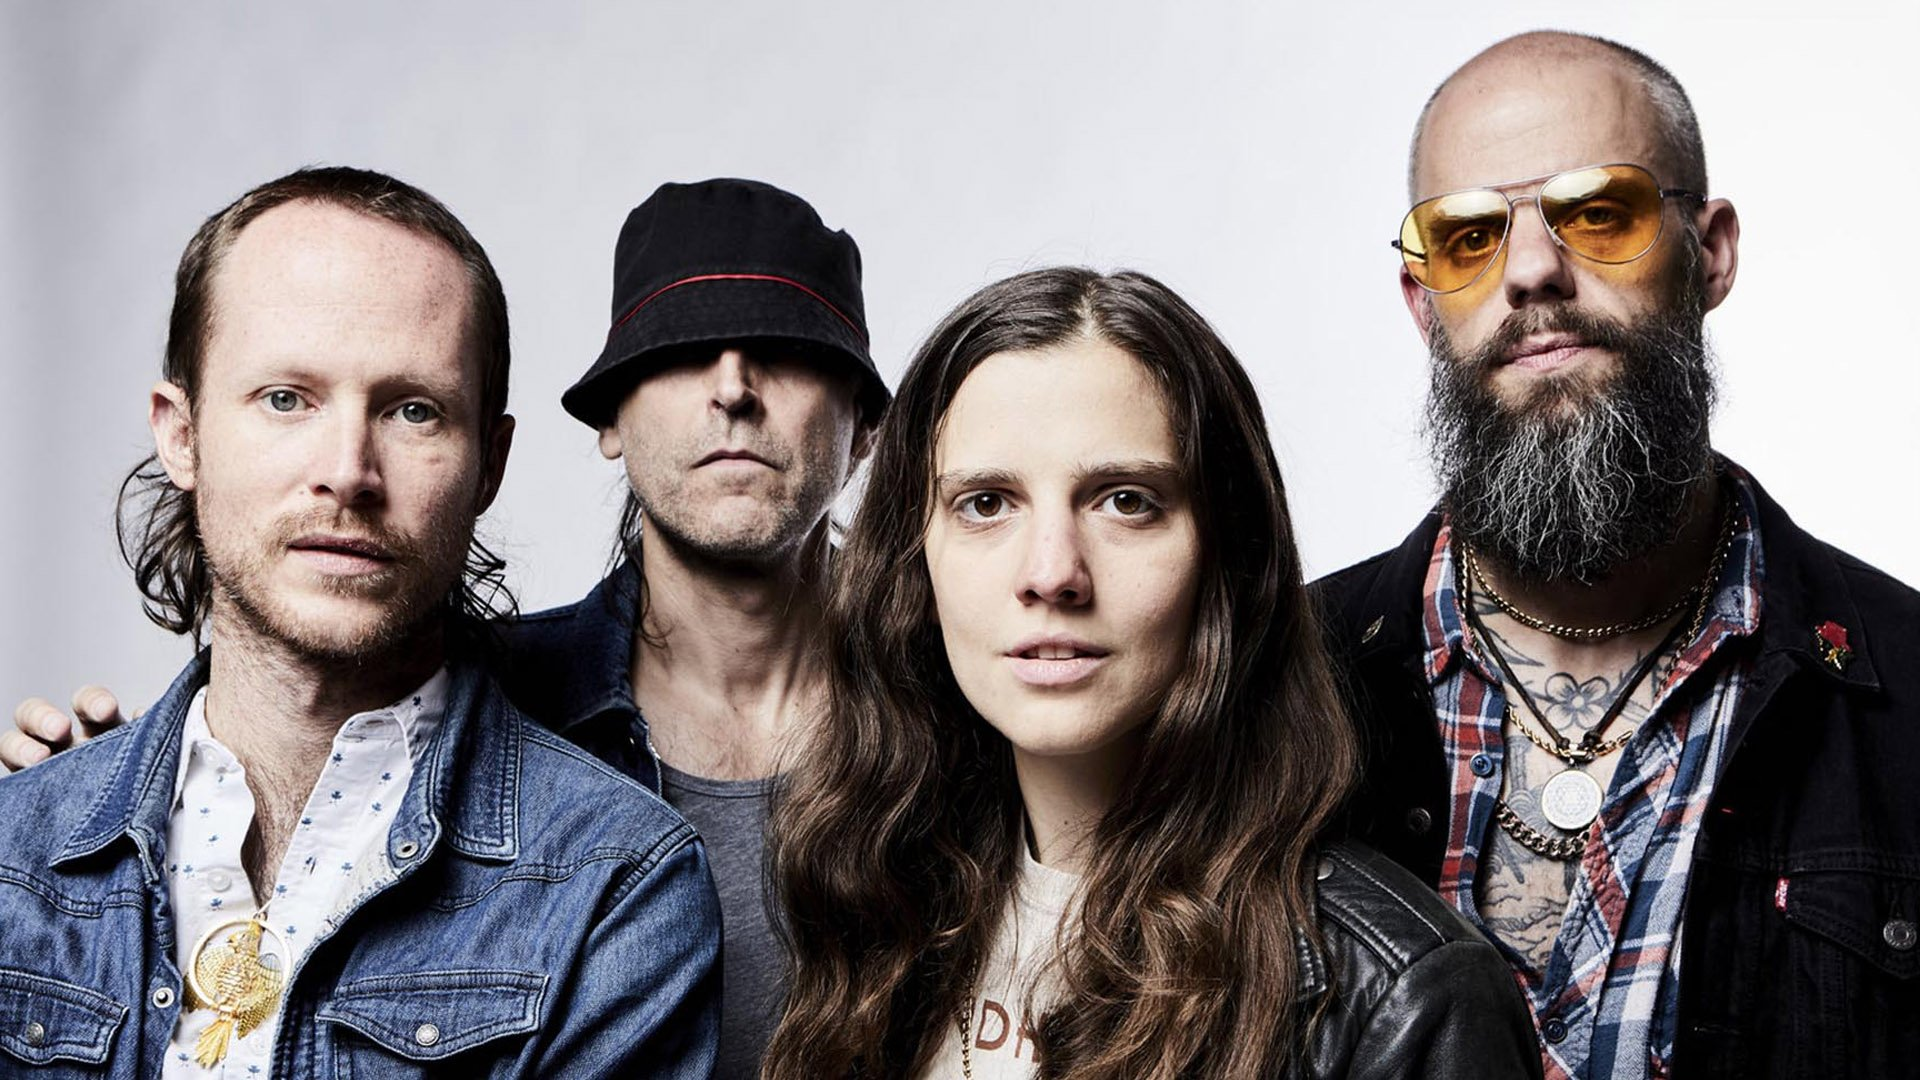 Baroness-band photo